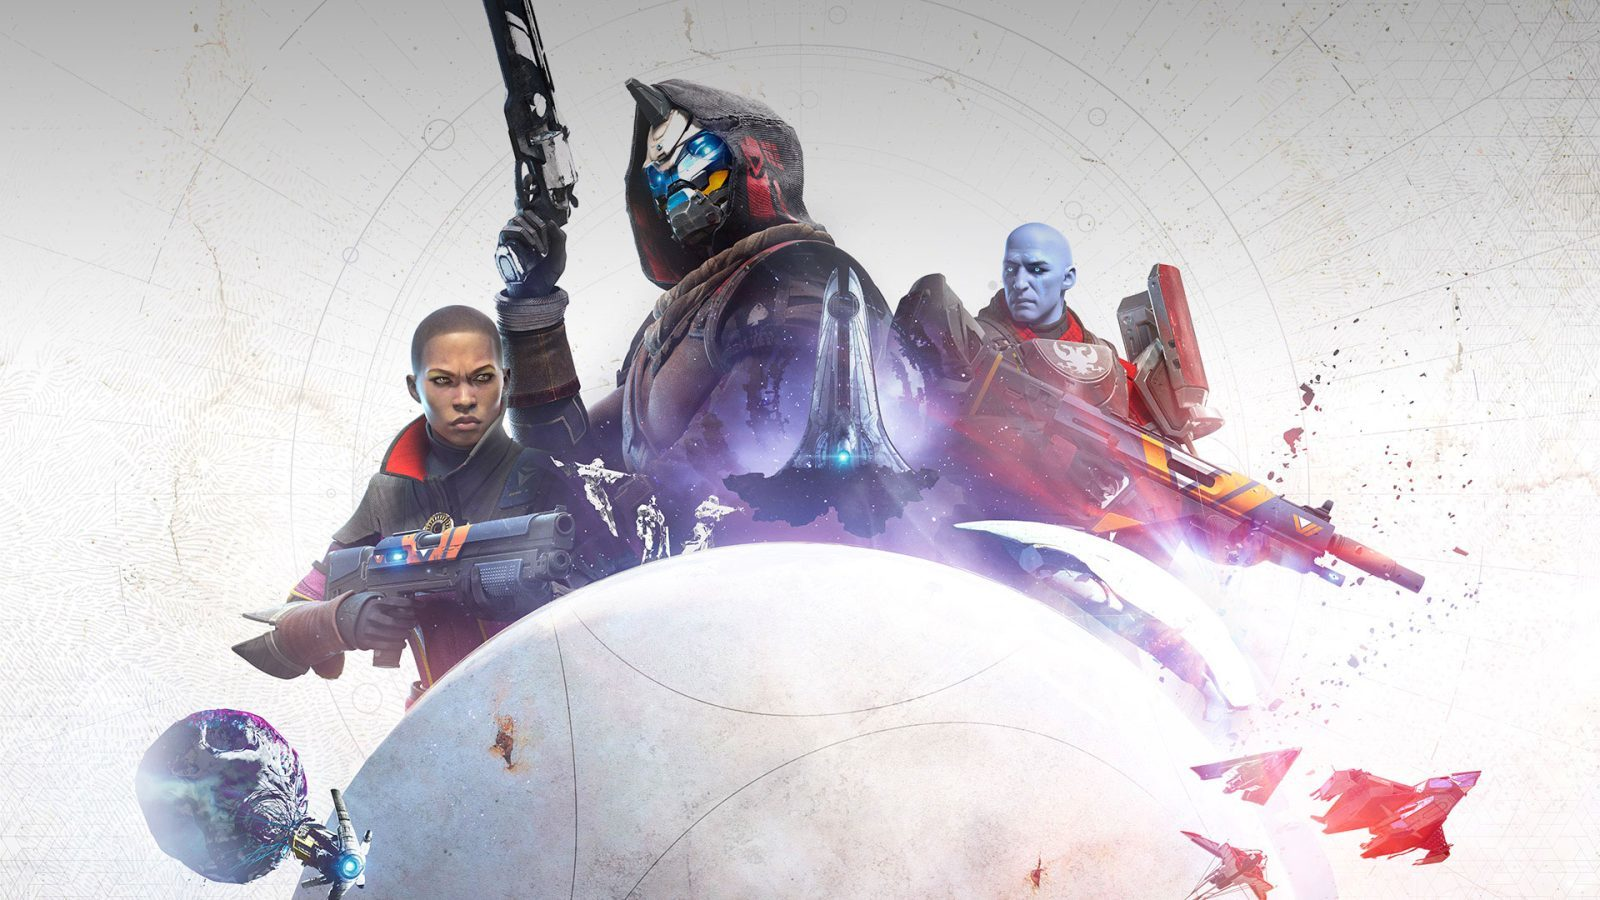 Destiny 2 Activision Bungie downtime New Light Google Stadia